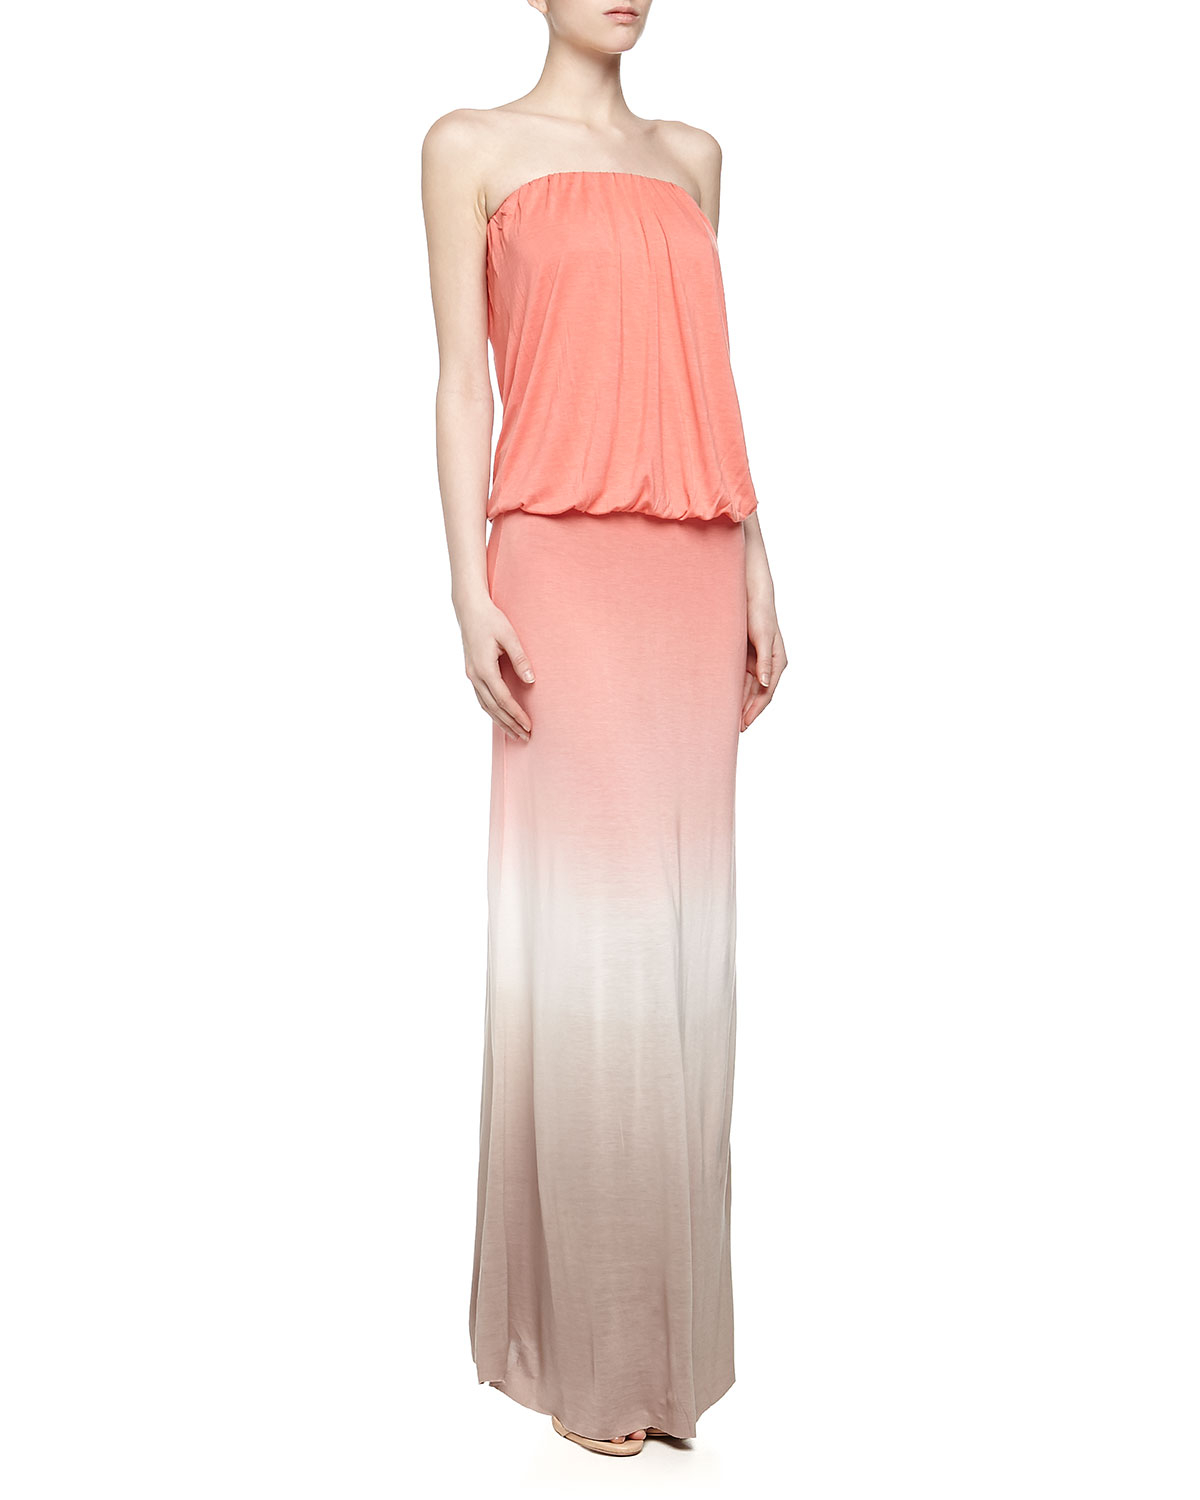 Young fabulous & broke Sydney Strapless Sherbet Ombre Maxi ...